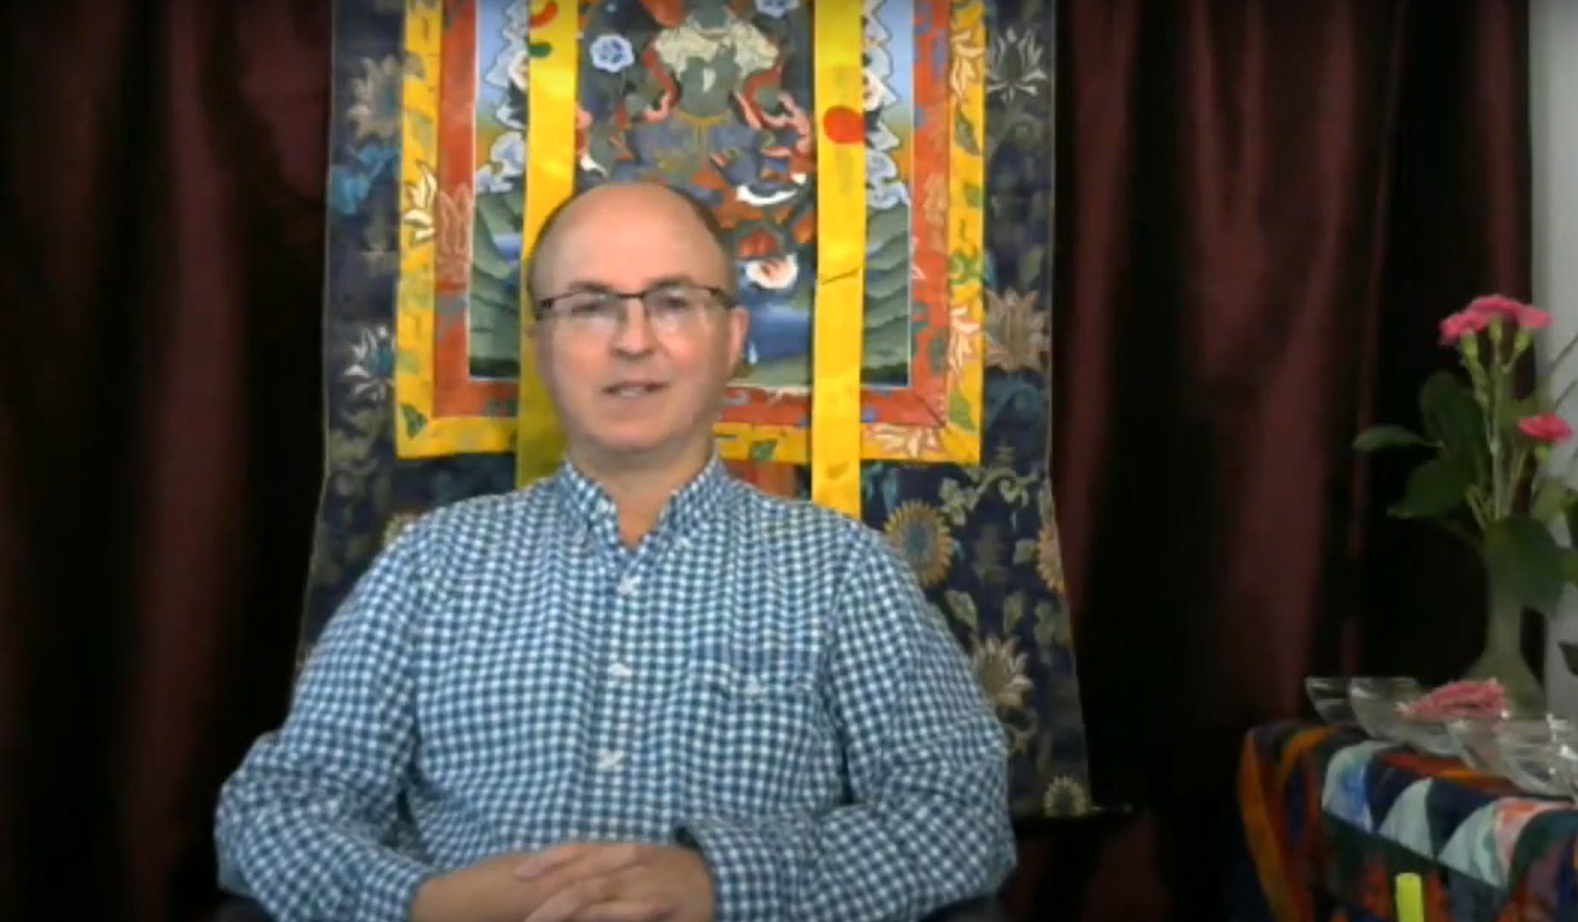 Andrew Smith talks about bringing this moment to the dharma